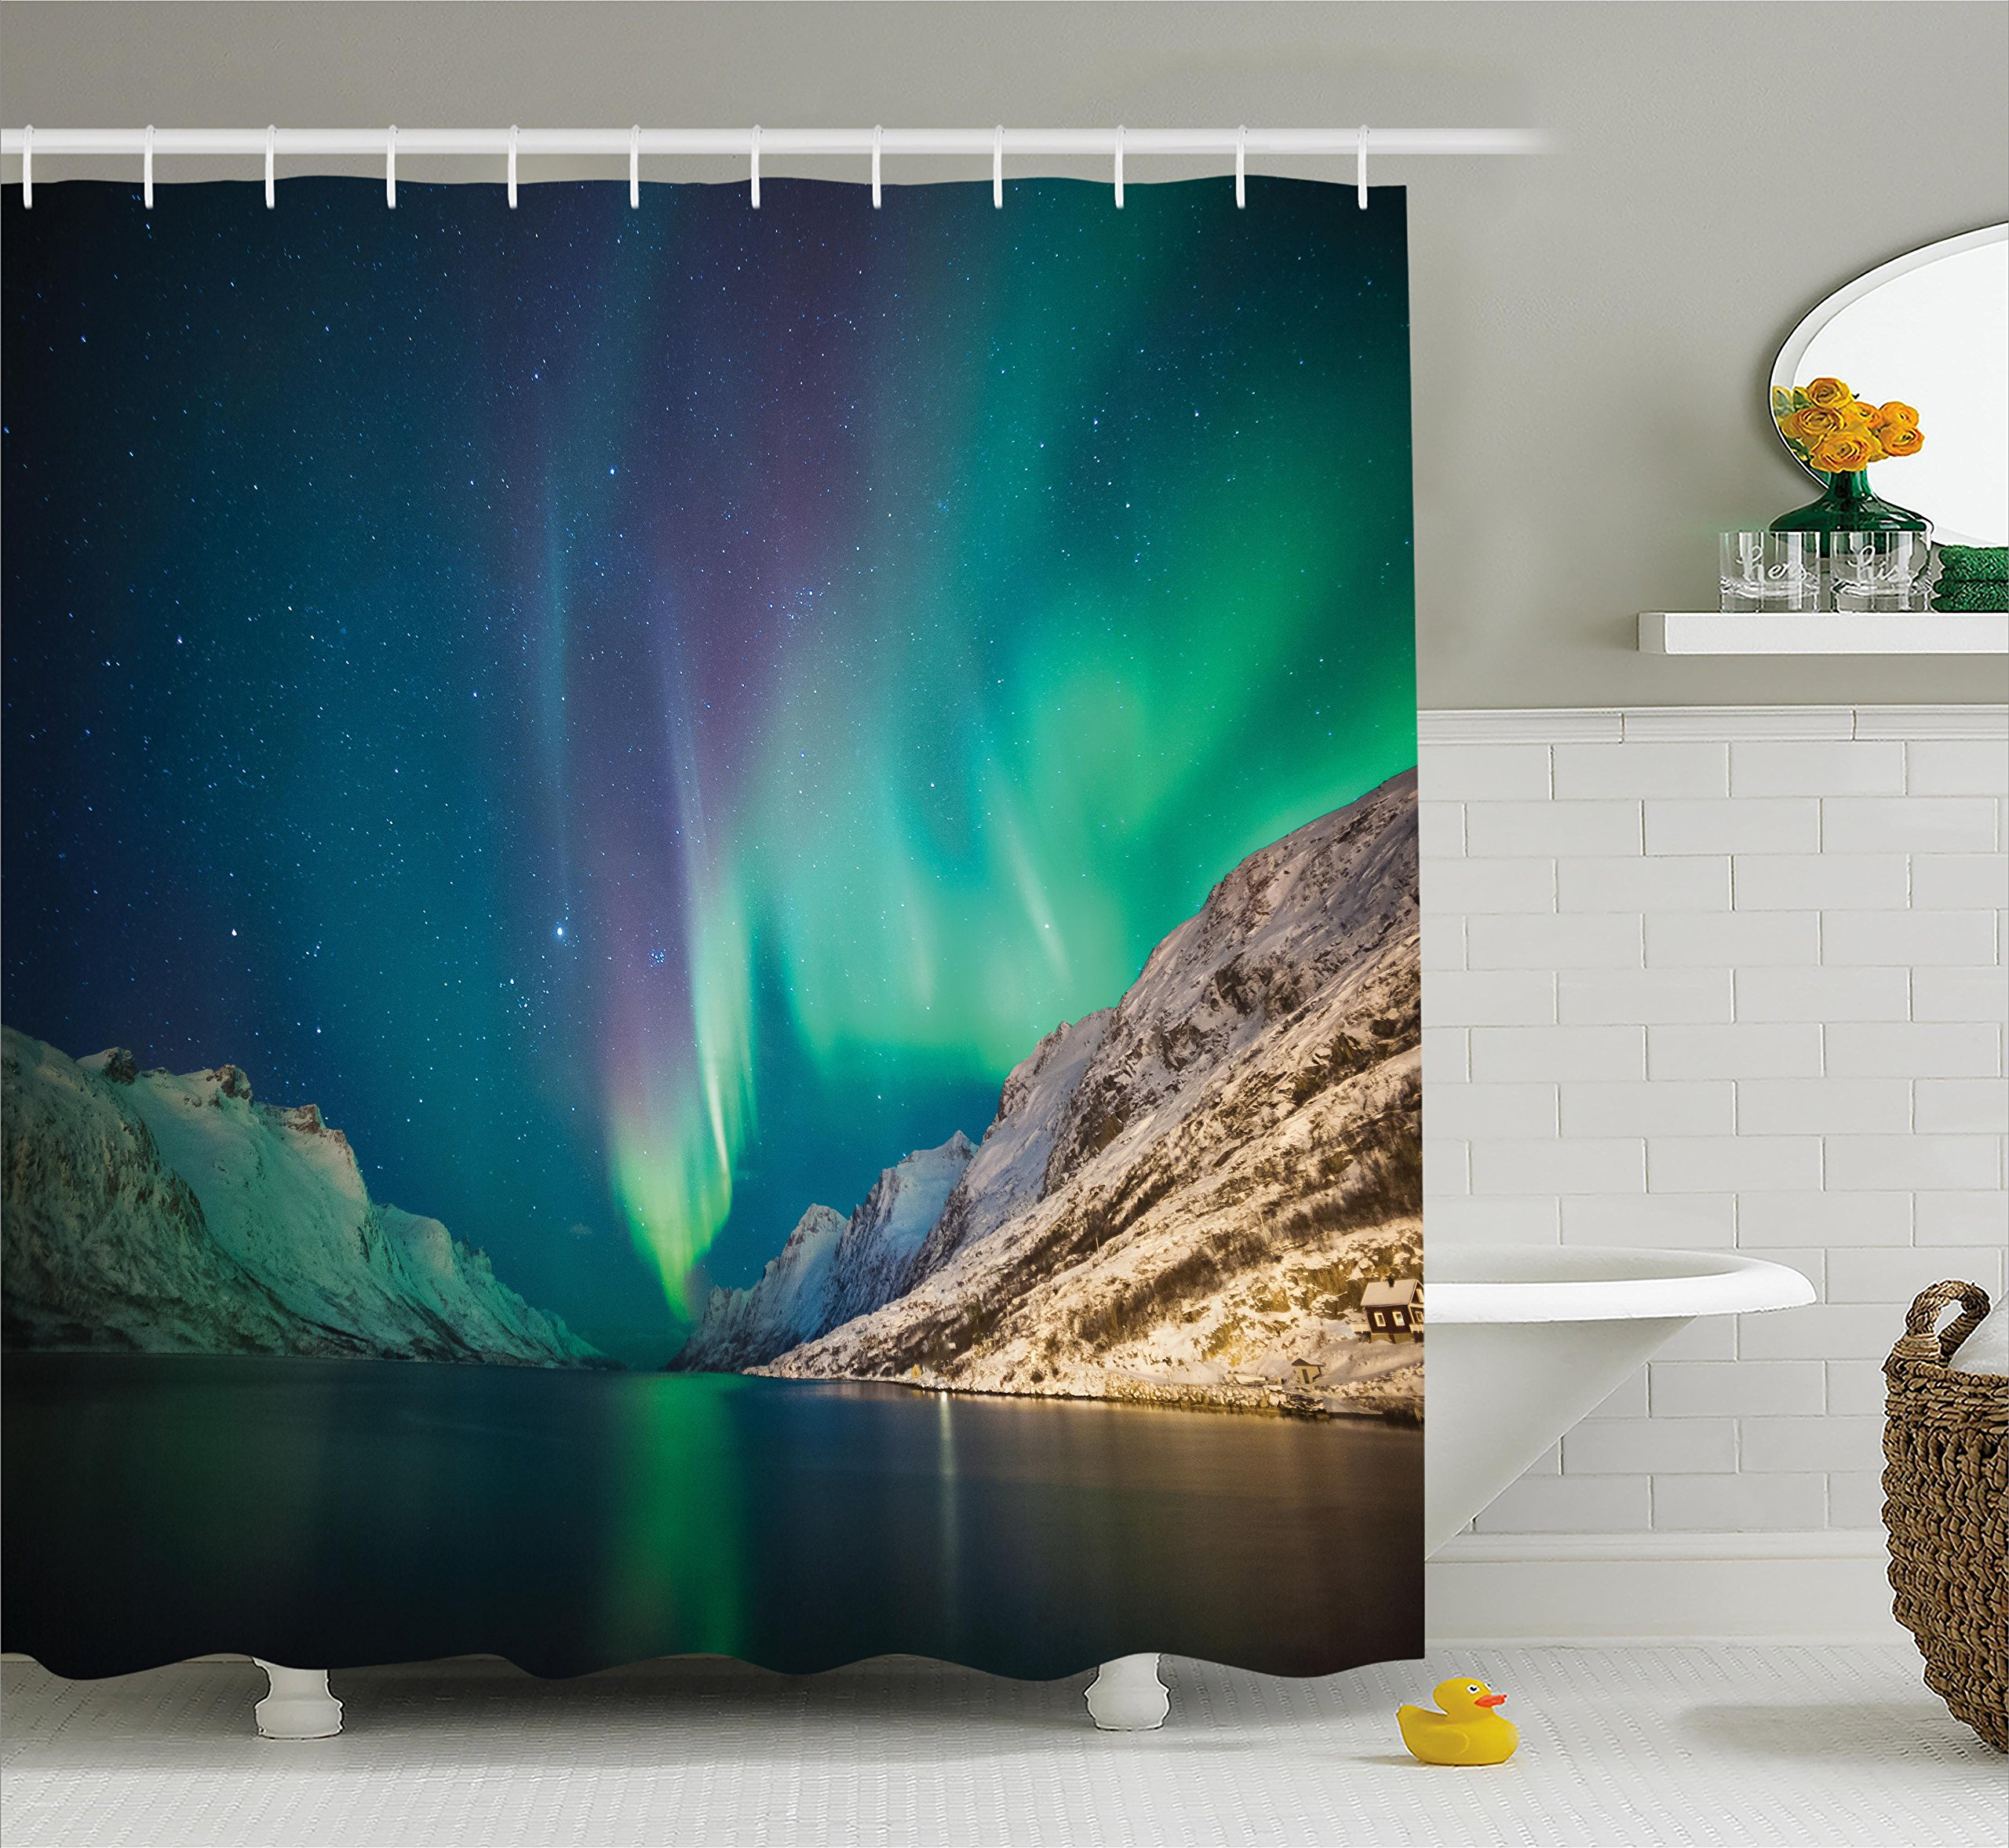 Ambesonne Nature Decor Shower Curtain, Mystical Northern Lights Above Rocky Hills Magnetic Poles Solar Space Panorama, Fabric Bathroom Decor Set with Hooks, 75 inches Long, Jade Green